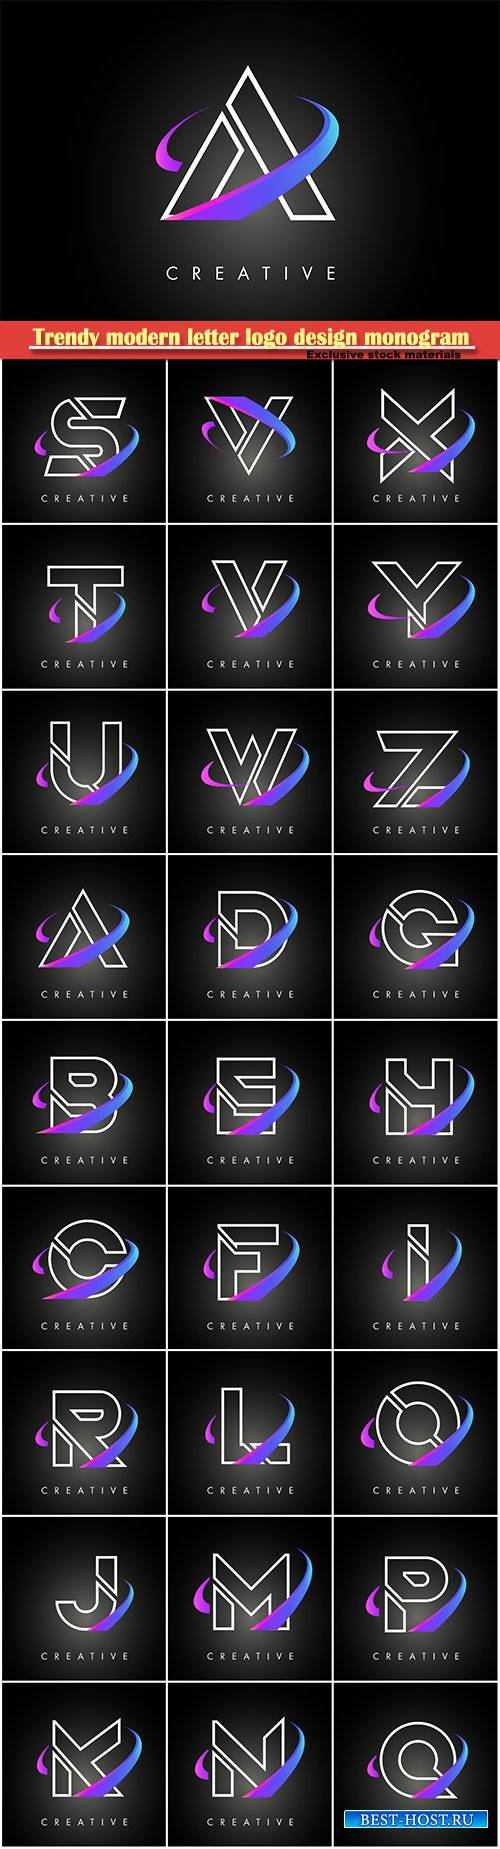 Trendy modern letter logo design monogram and creative swoosh